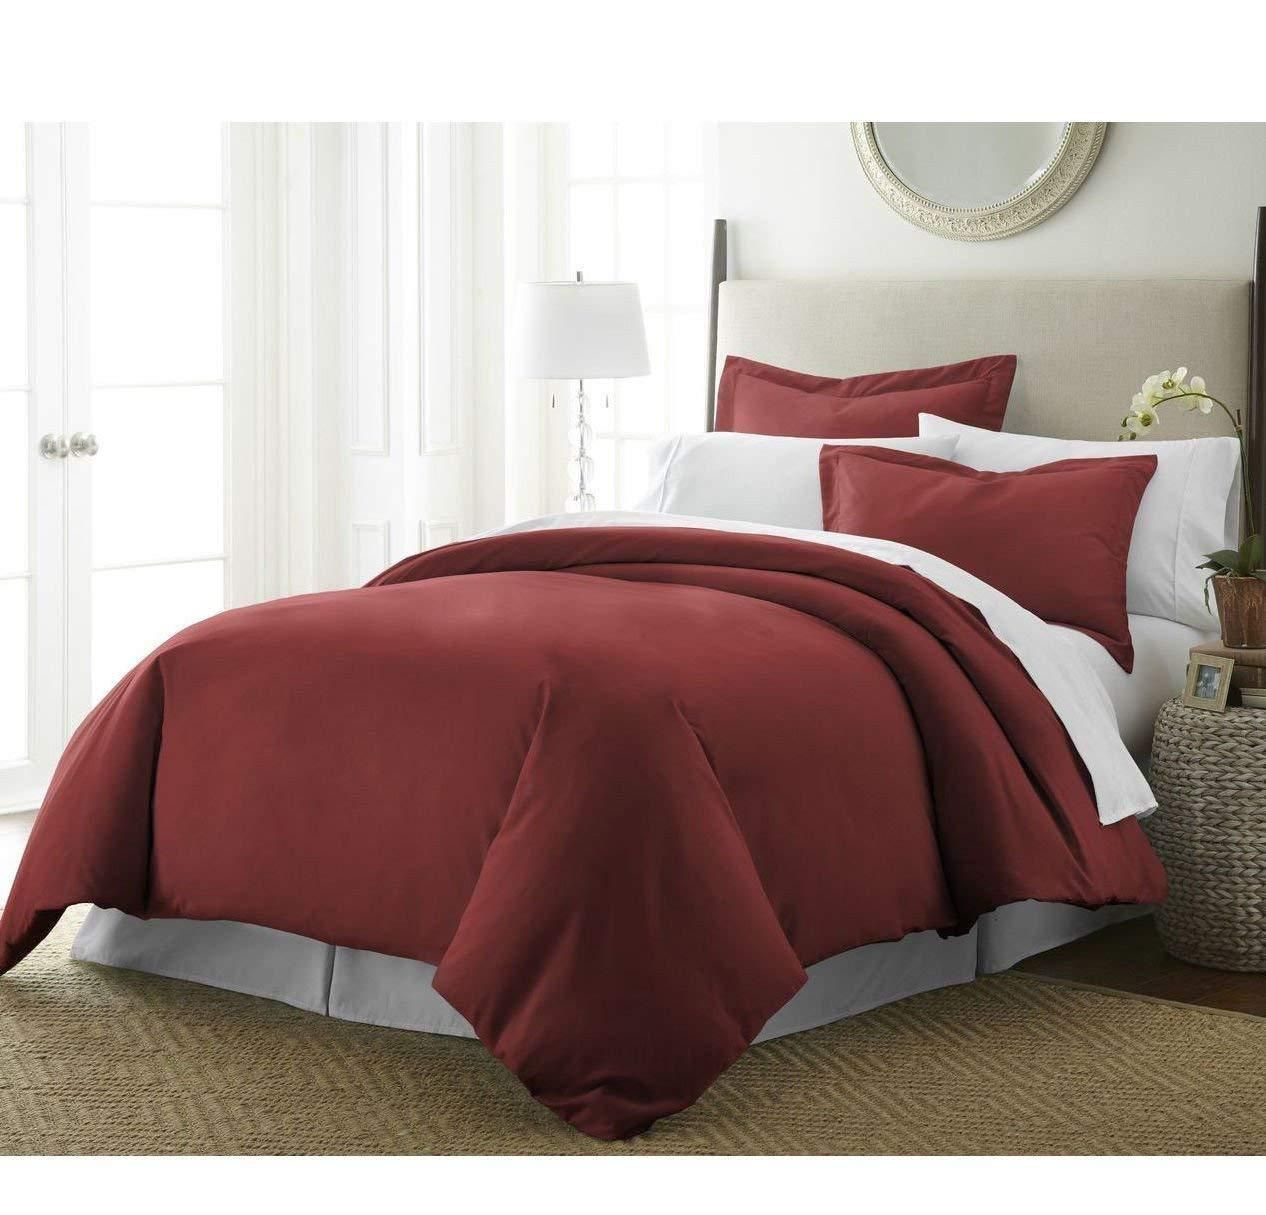 Burgundy Red Geometric Square Shape Pattern Duvet Cover Full Queen